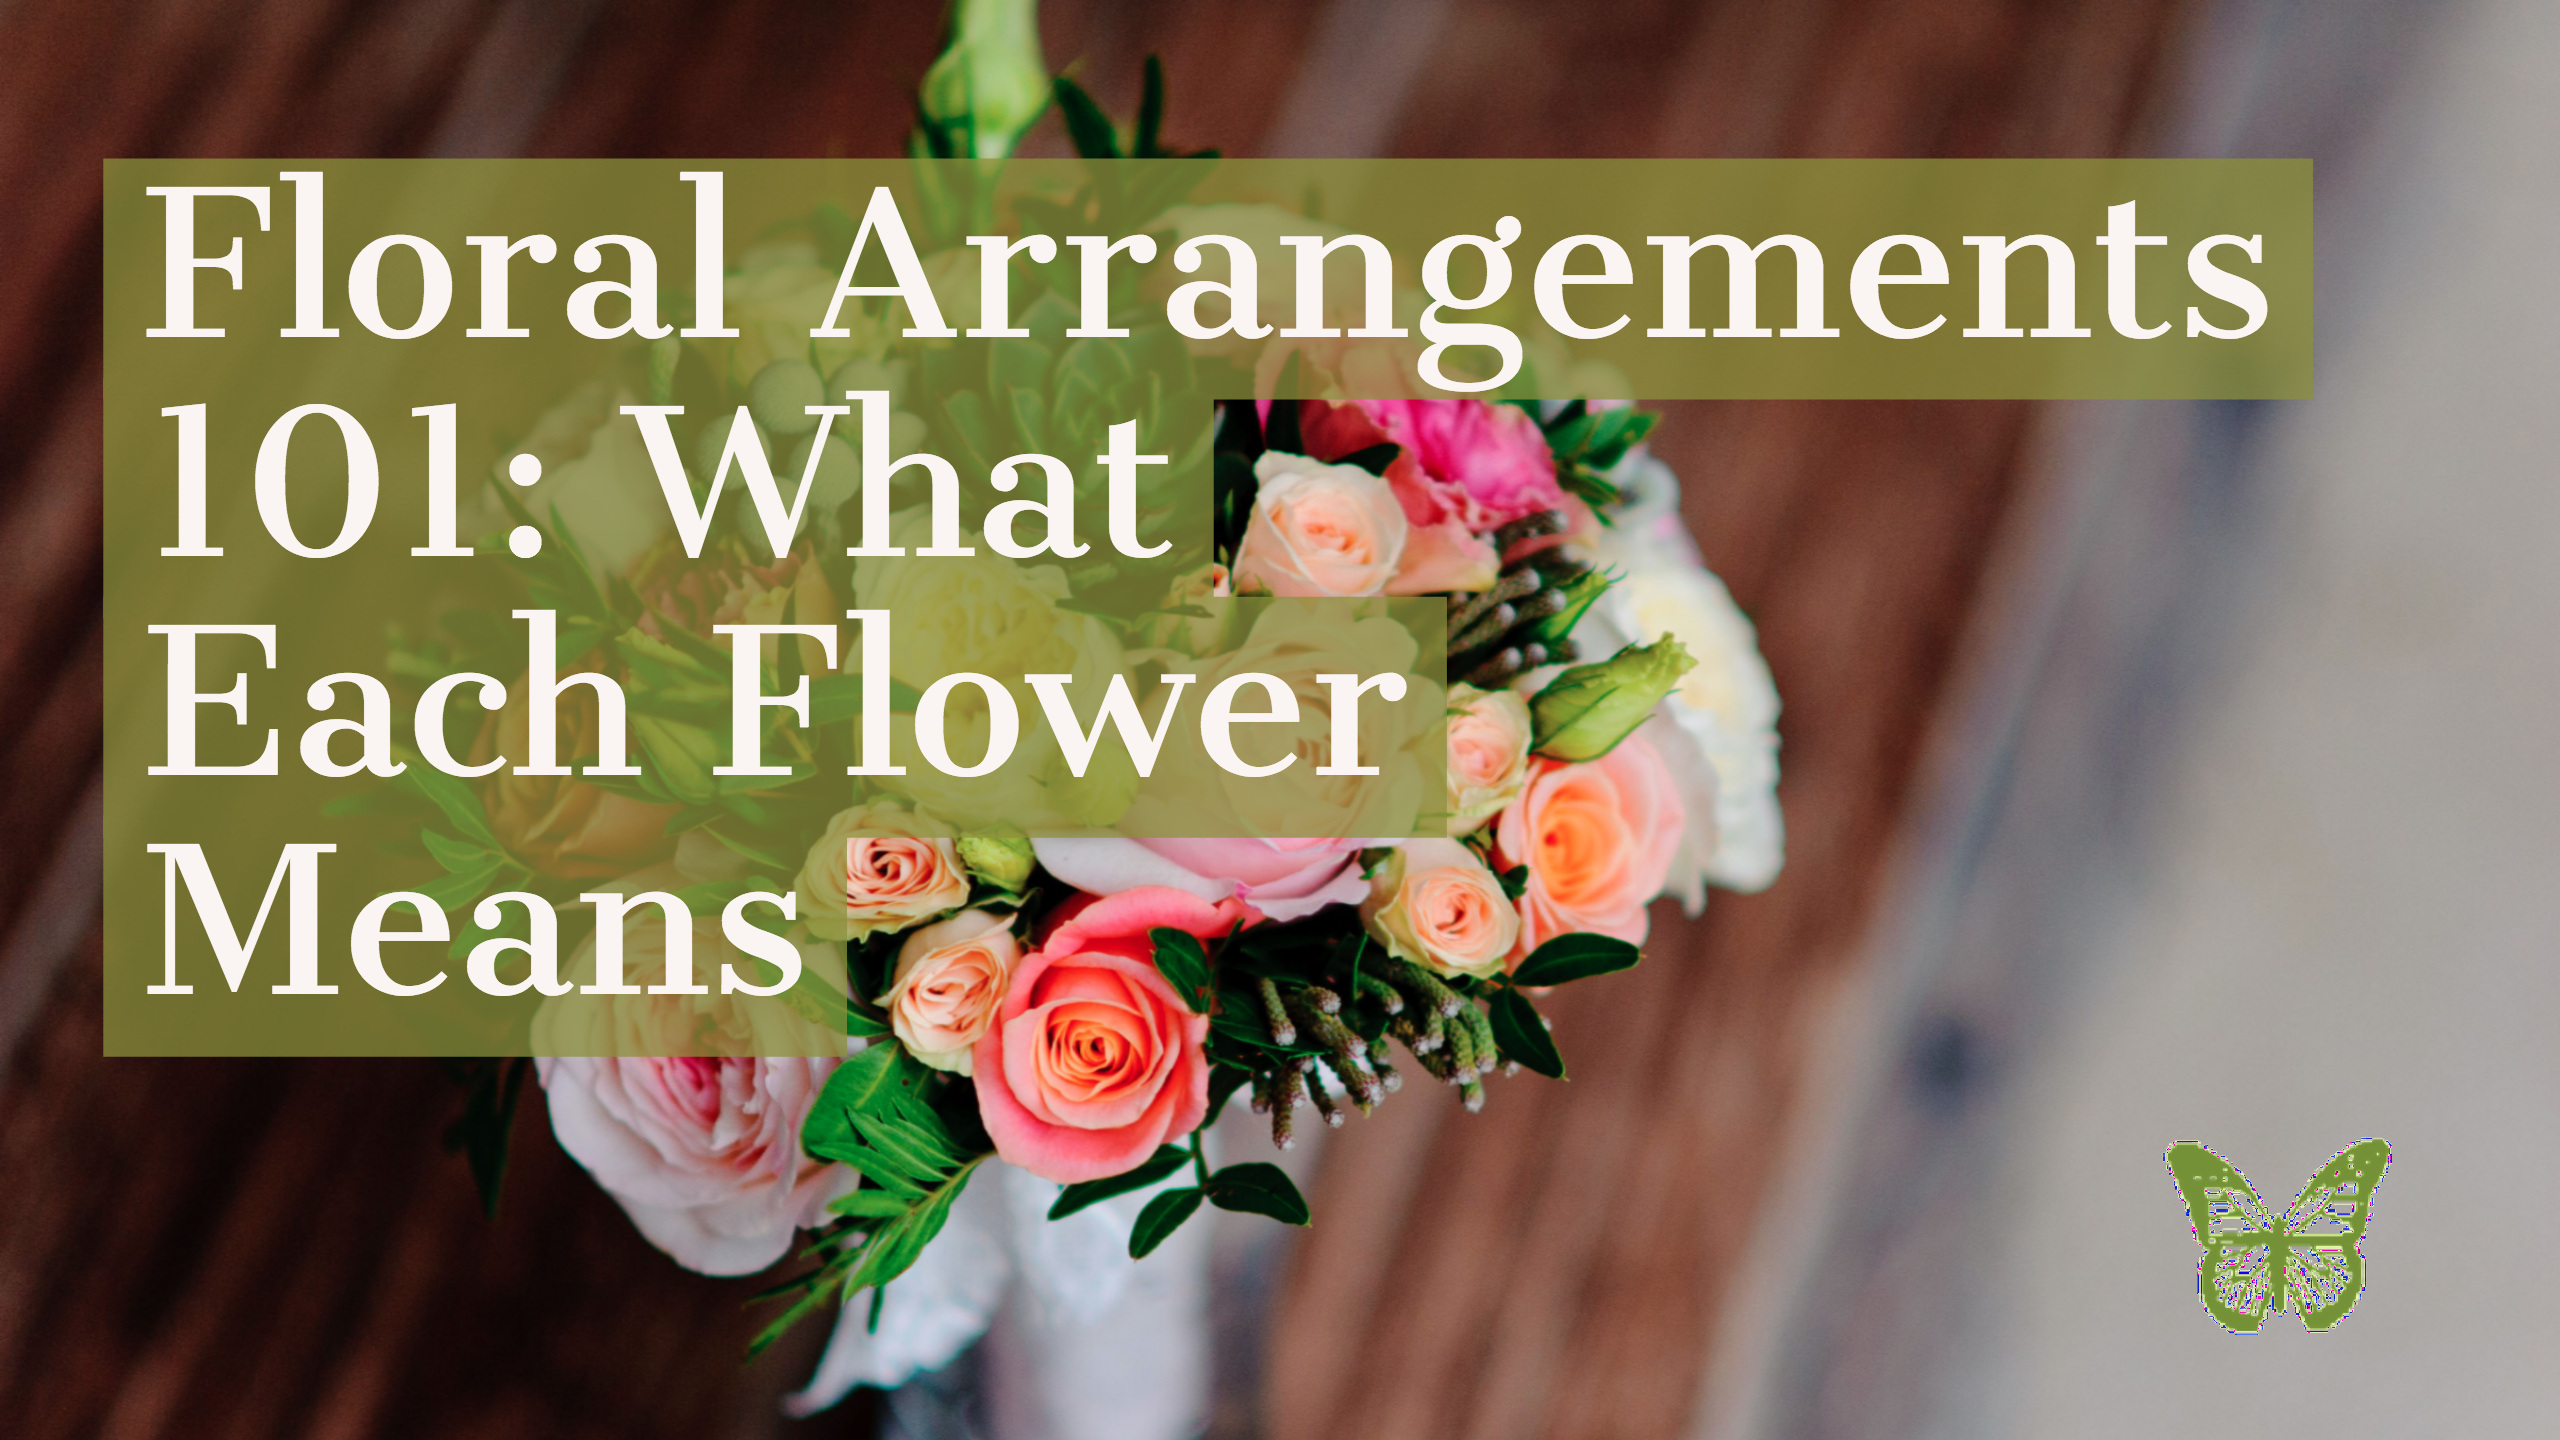 To make the process of choosing floral arrangements easier, we are sharing the meaning behind the most commonly used flowers for funeral arrangements